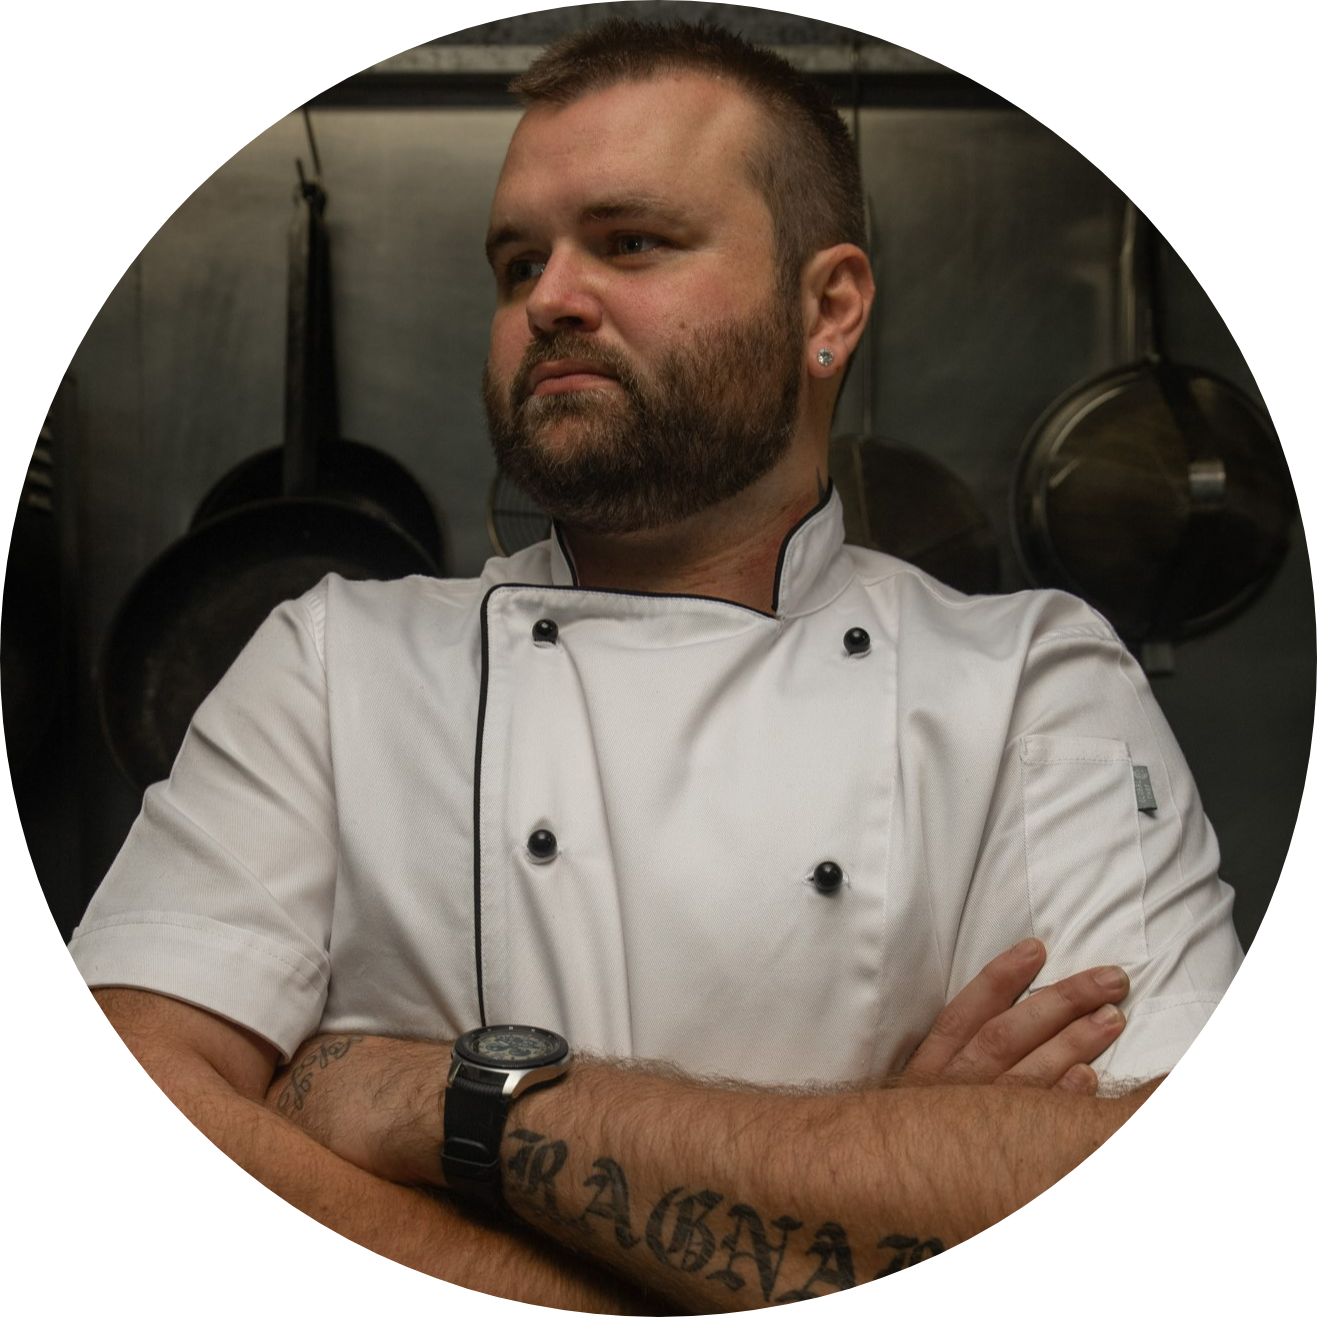 Shaun Leach: Head Chef posing with expresion: no soup for you